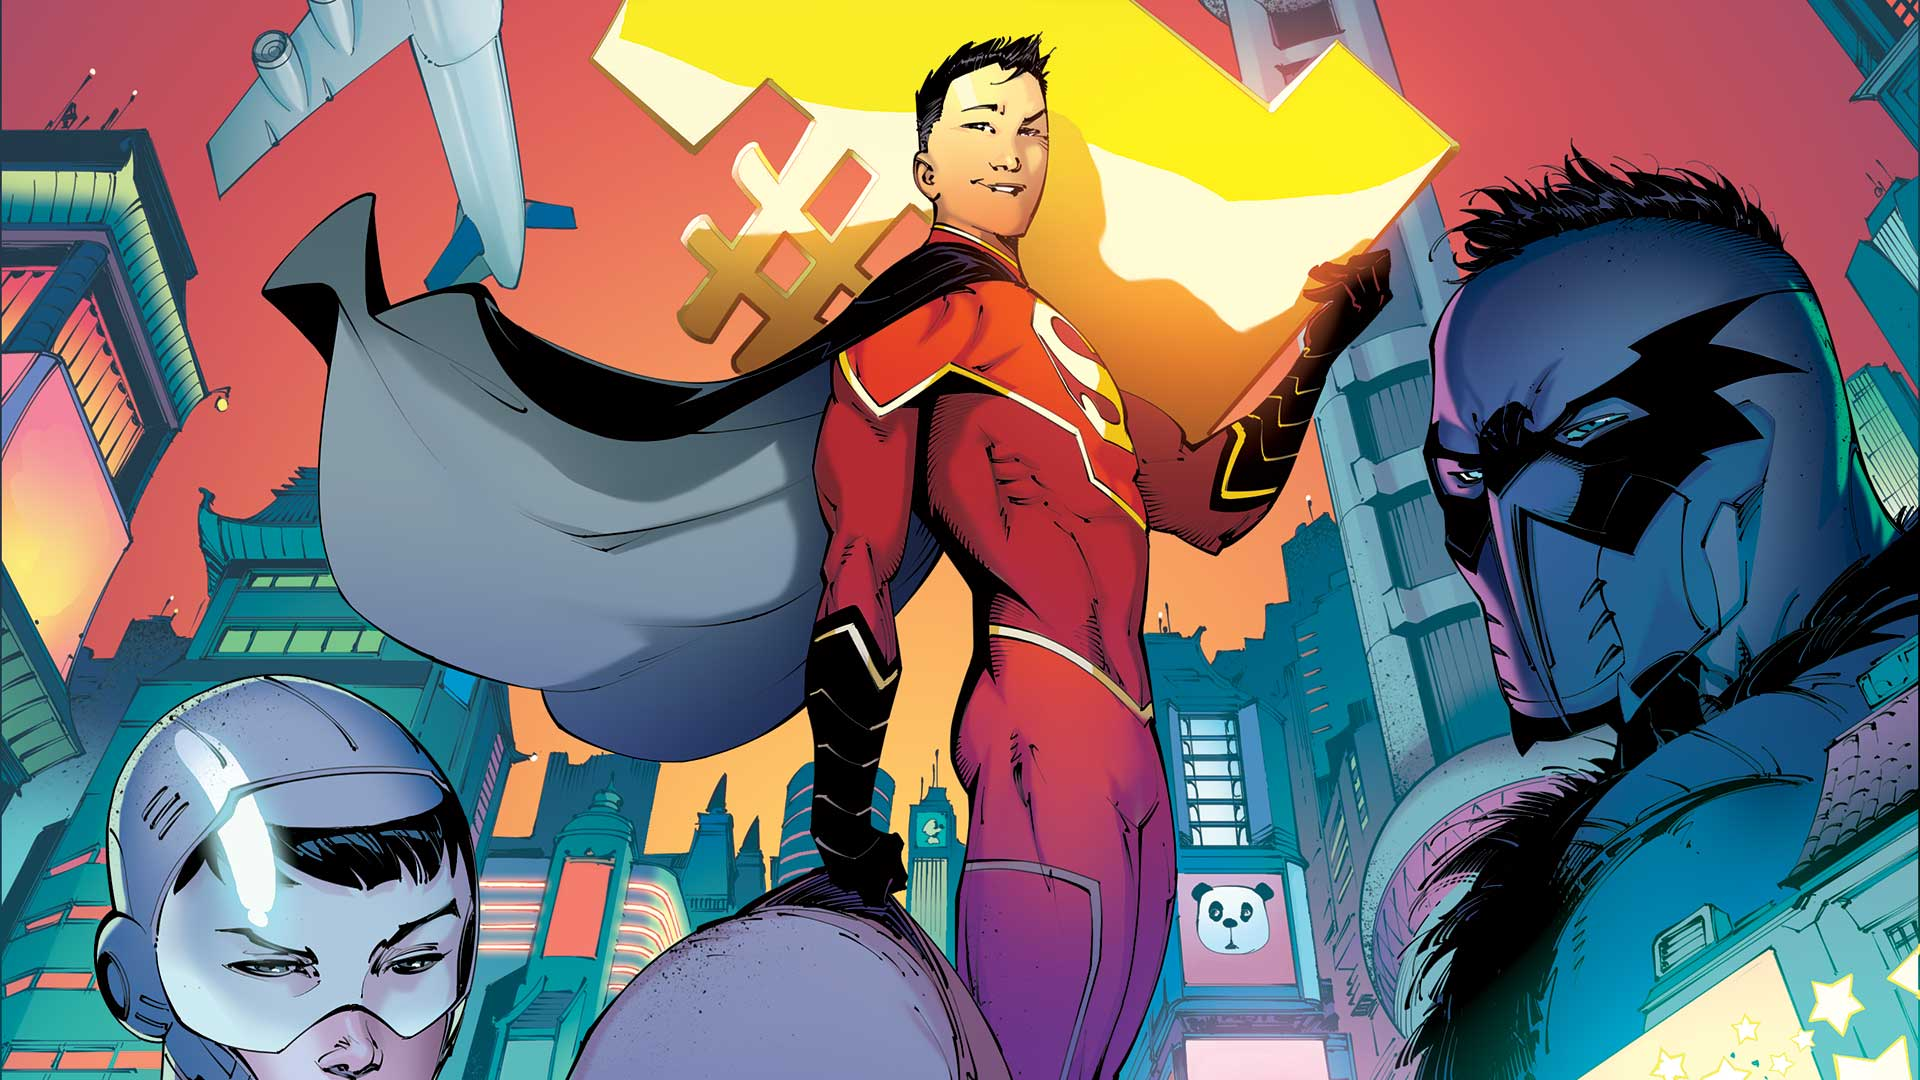 In the history of comics, Superman, be in any form, can be a tremendous marketable asset for DC.